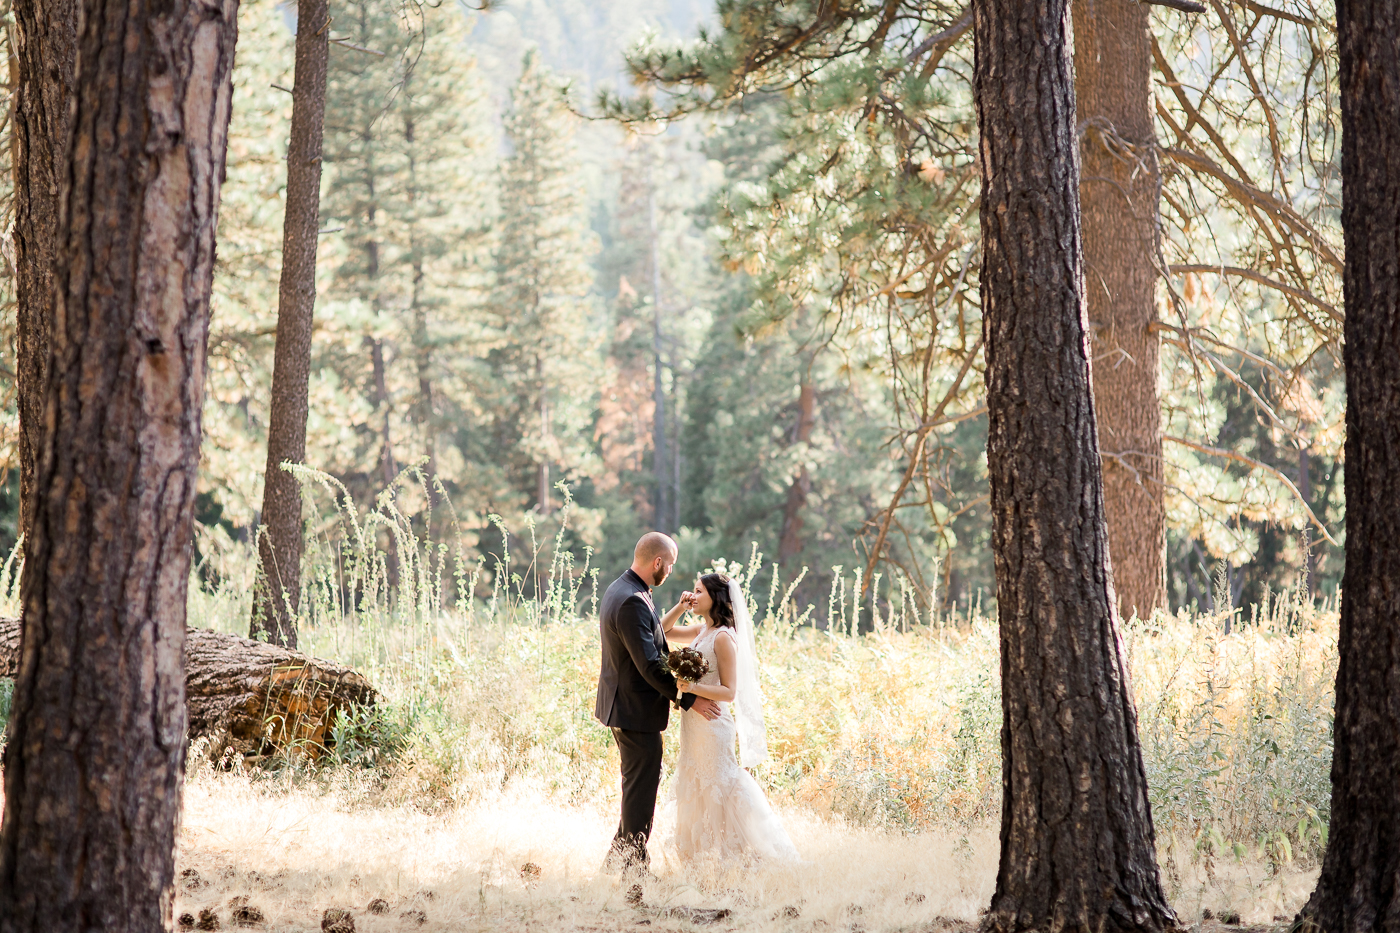 Campground wedding in California